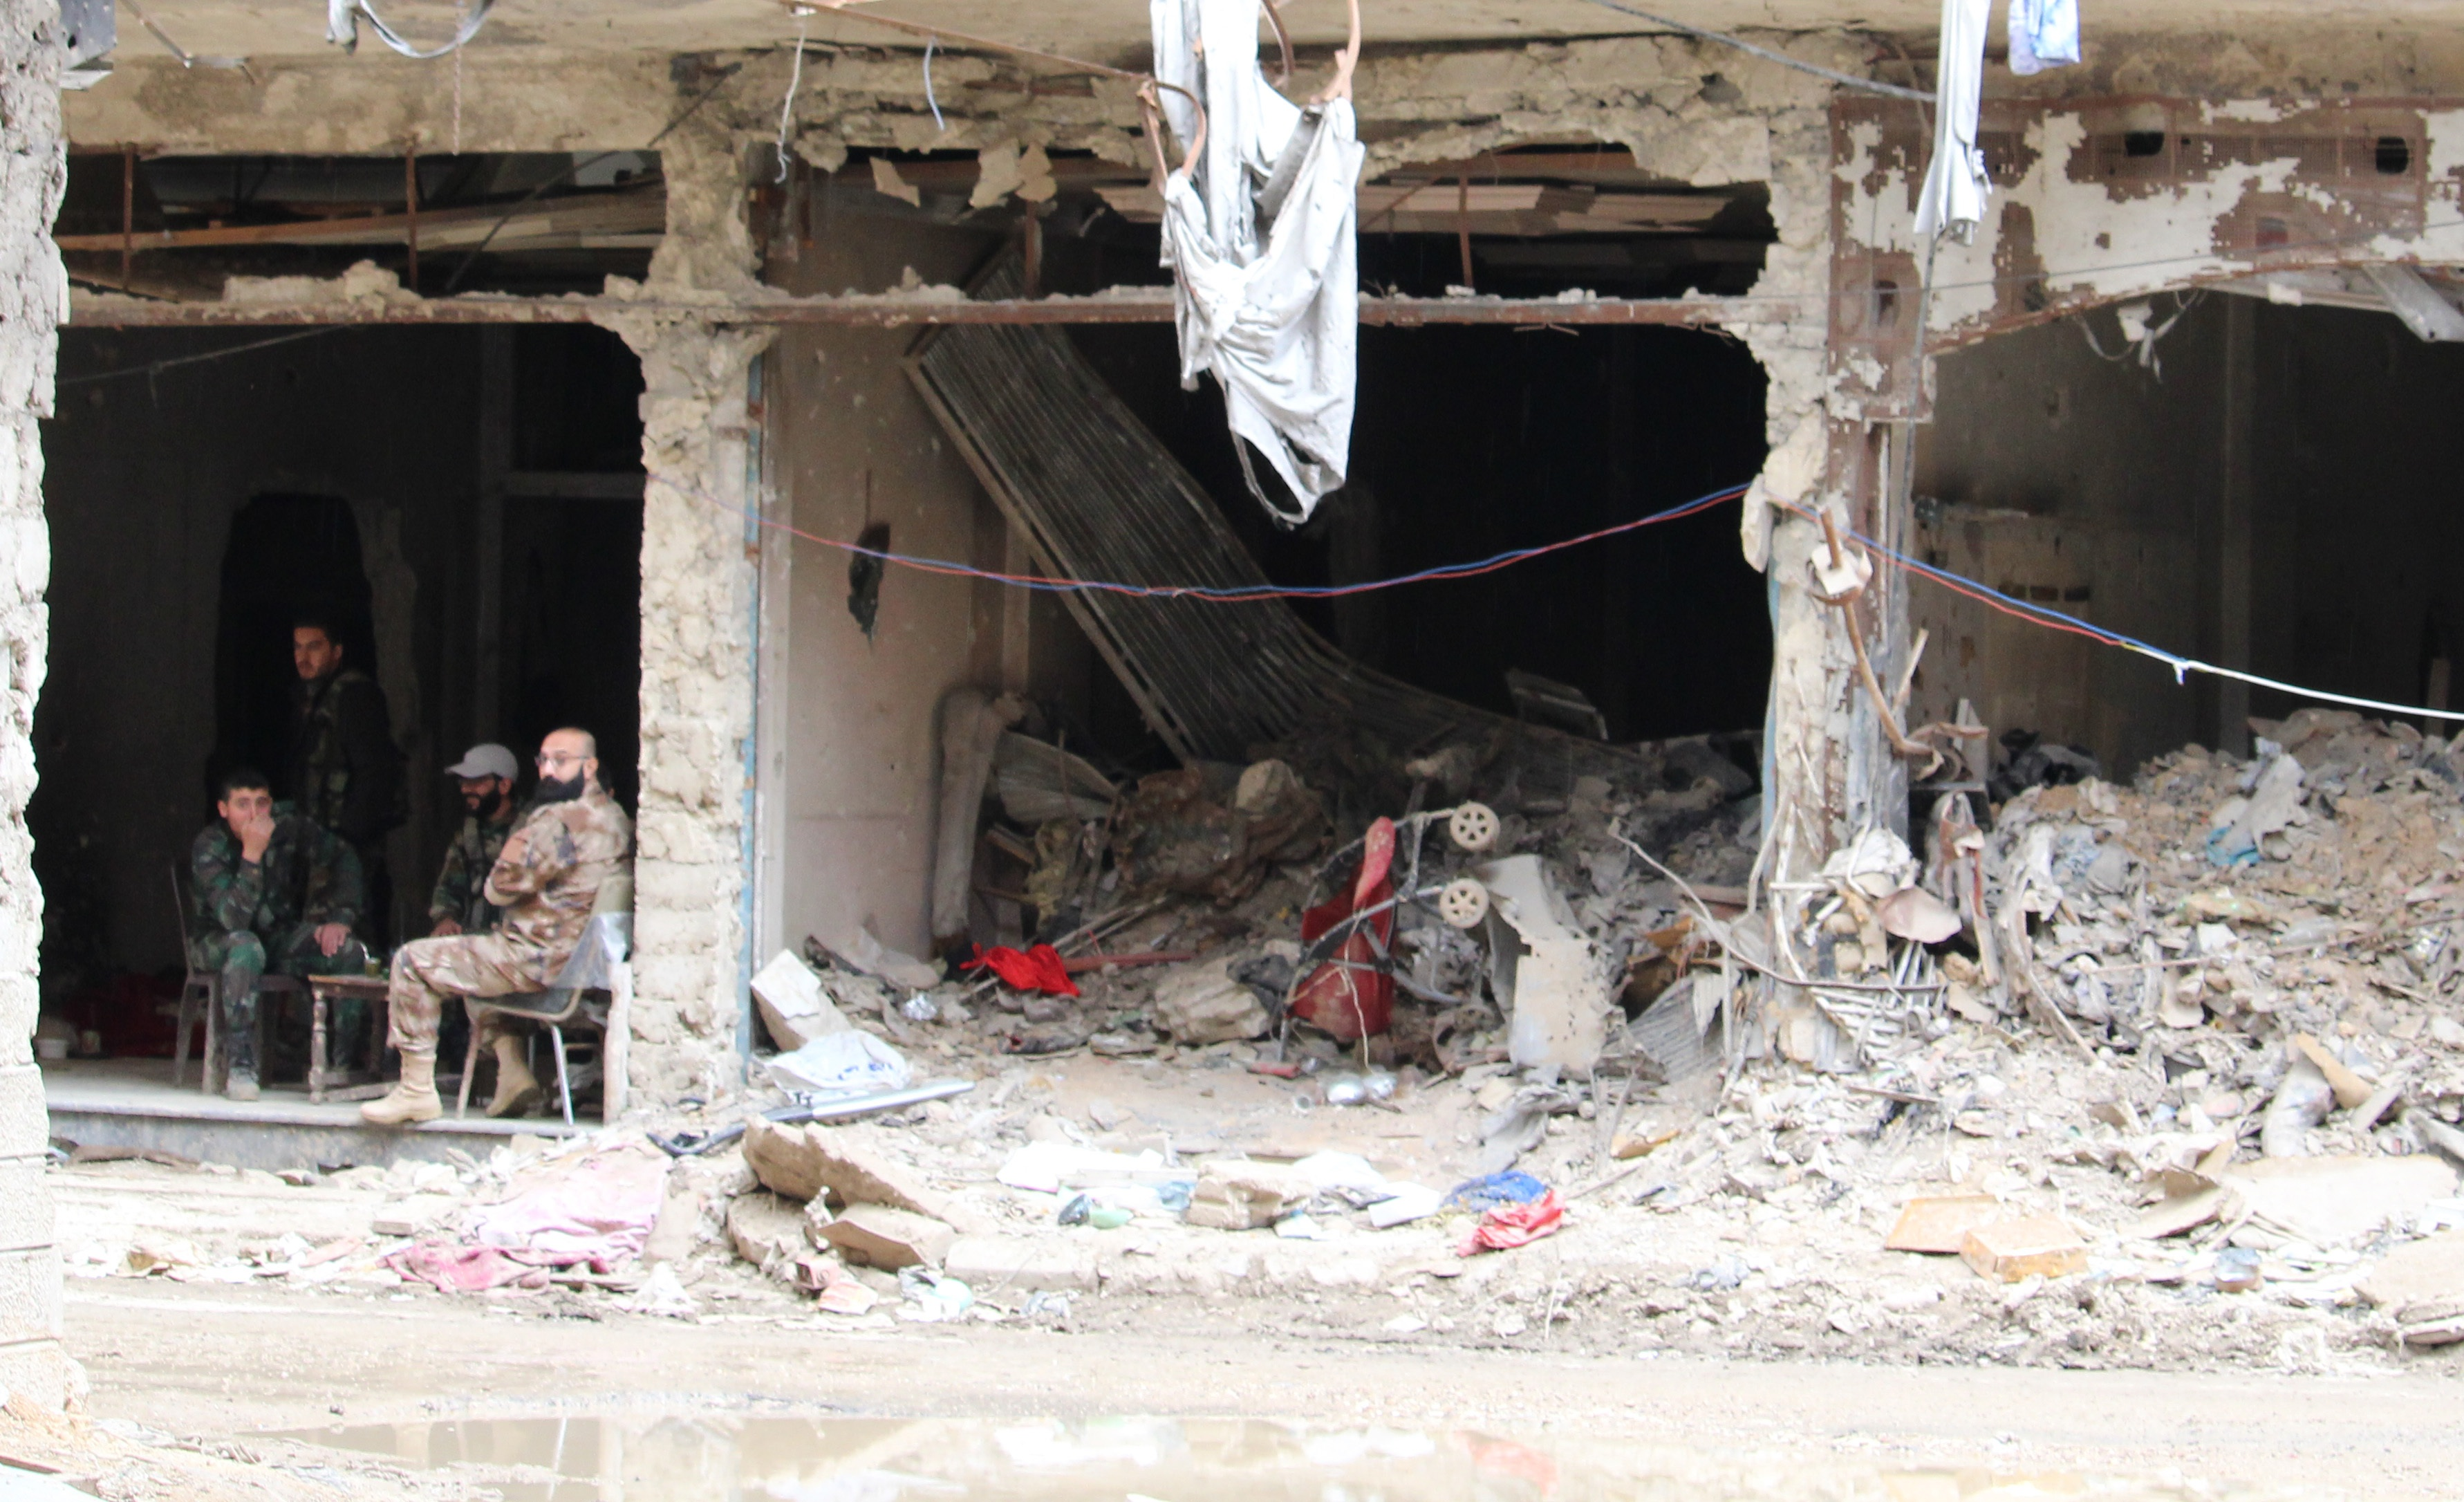 The destruction has arguably been even more acute in Yarmouk. (Stephanie Jenzer/CBC)